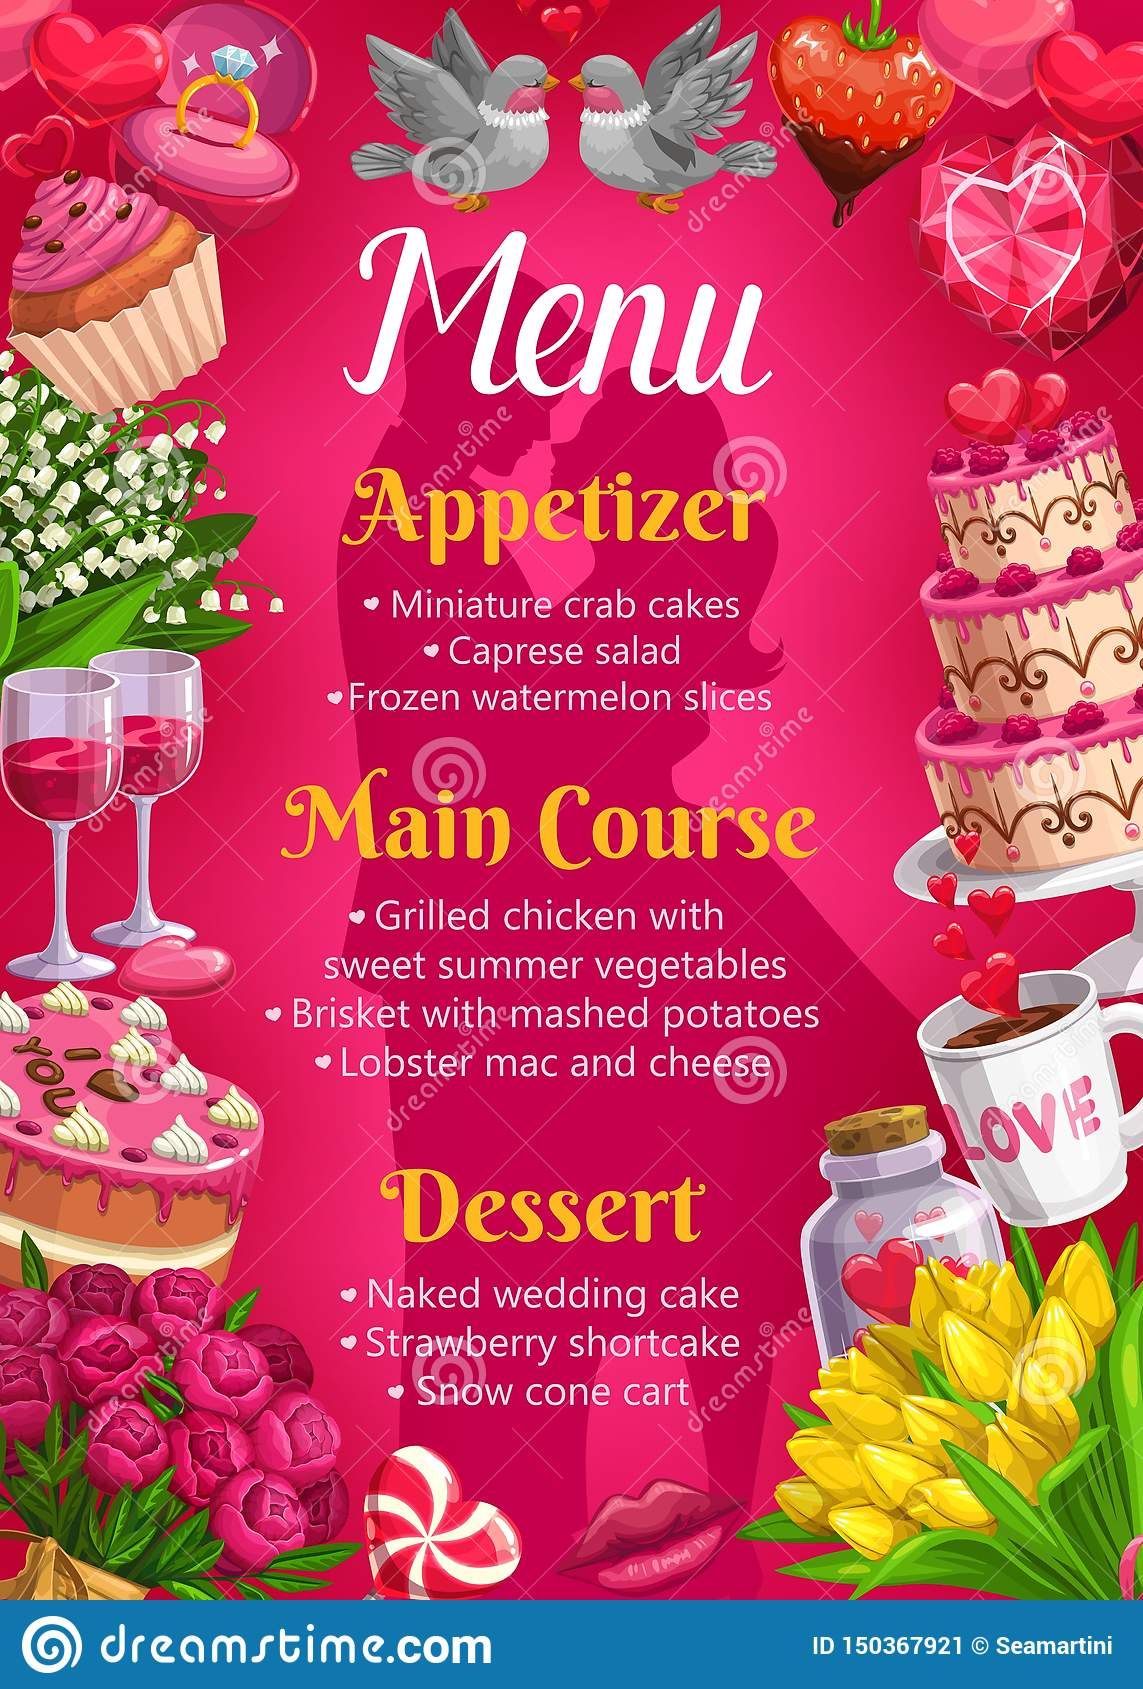 Menu On Wedding, Main Courses, Desserts Appetizers Stock